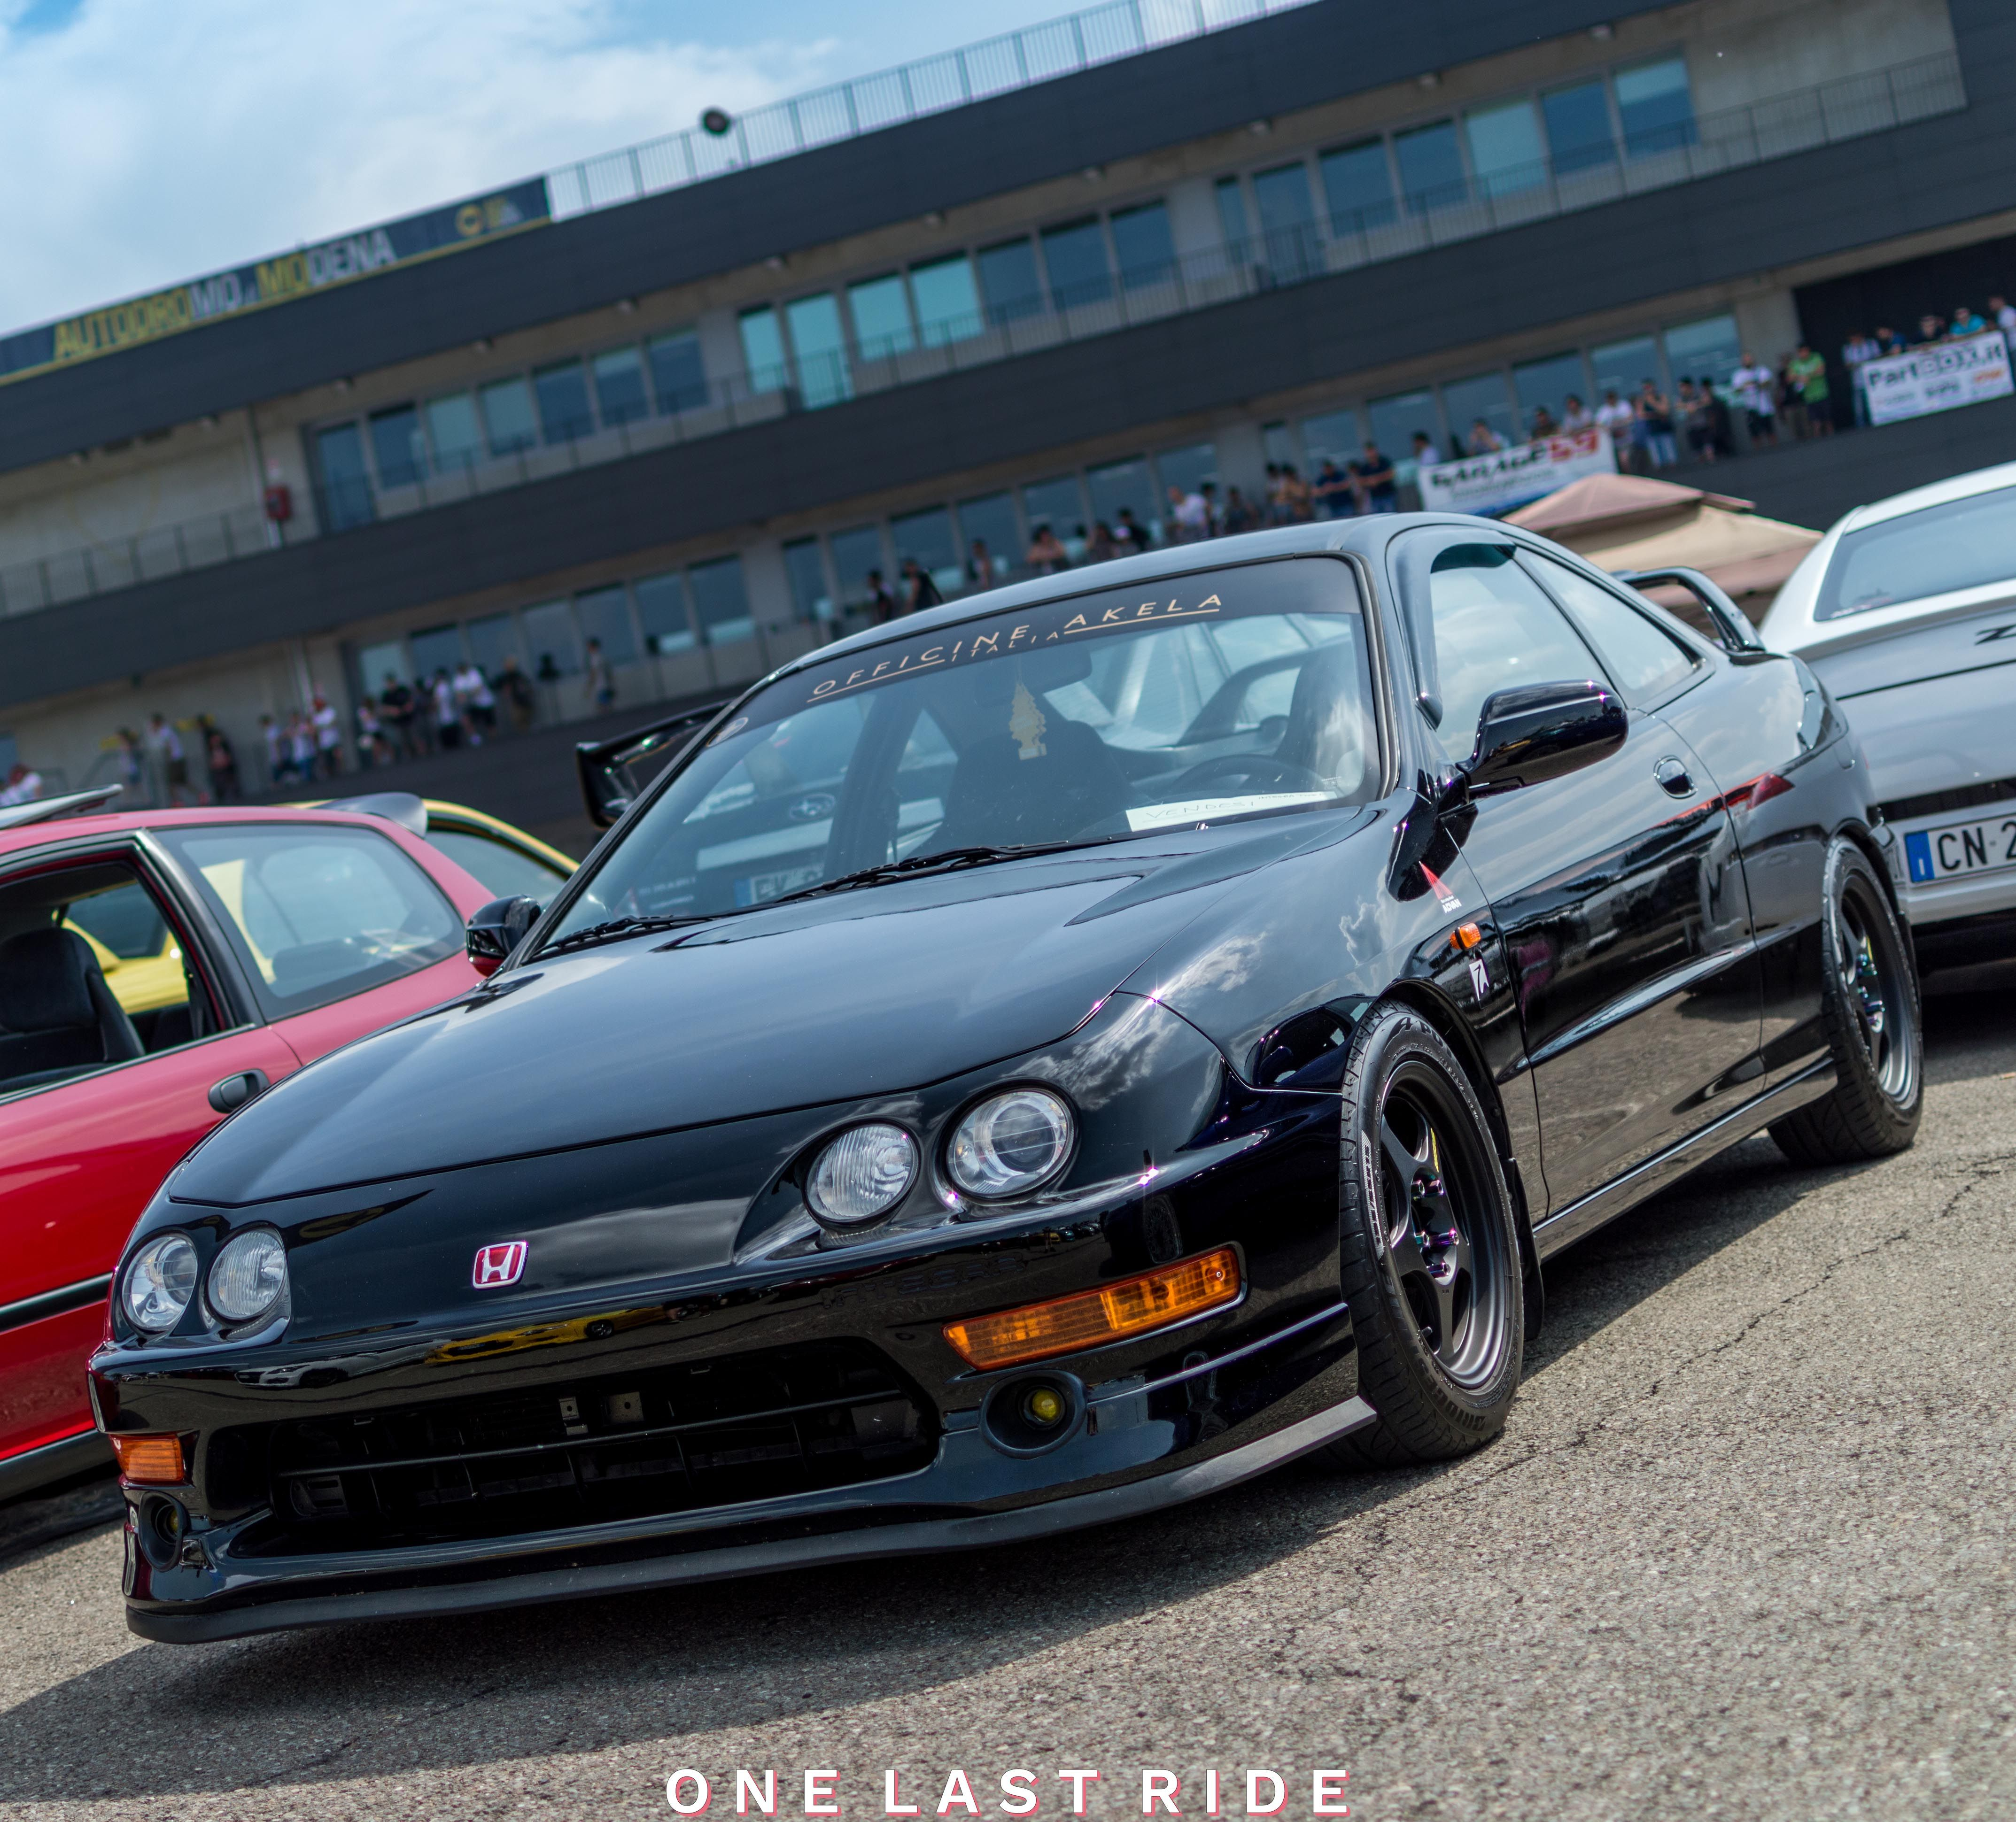 Honda Integra DC2, The Vtec Ace! Photographed By One Last